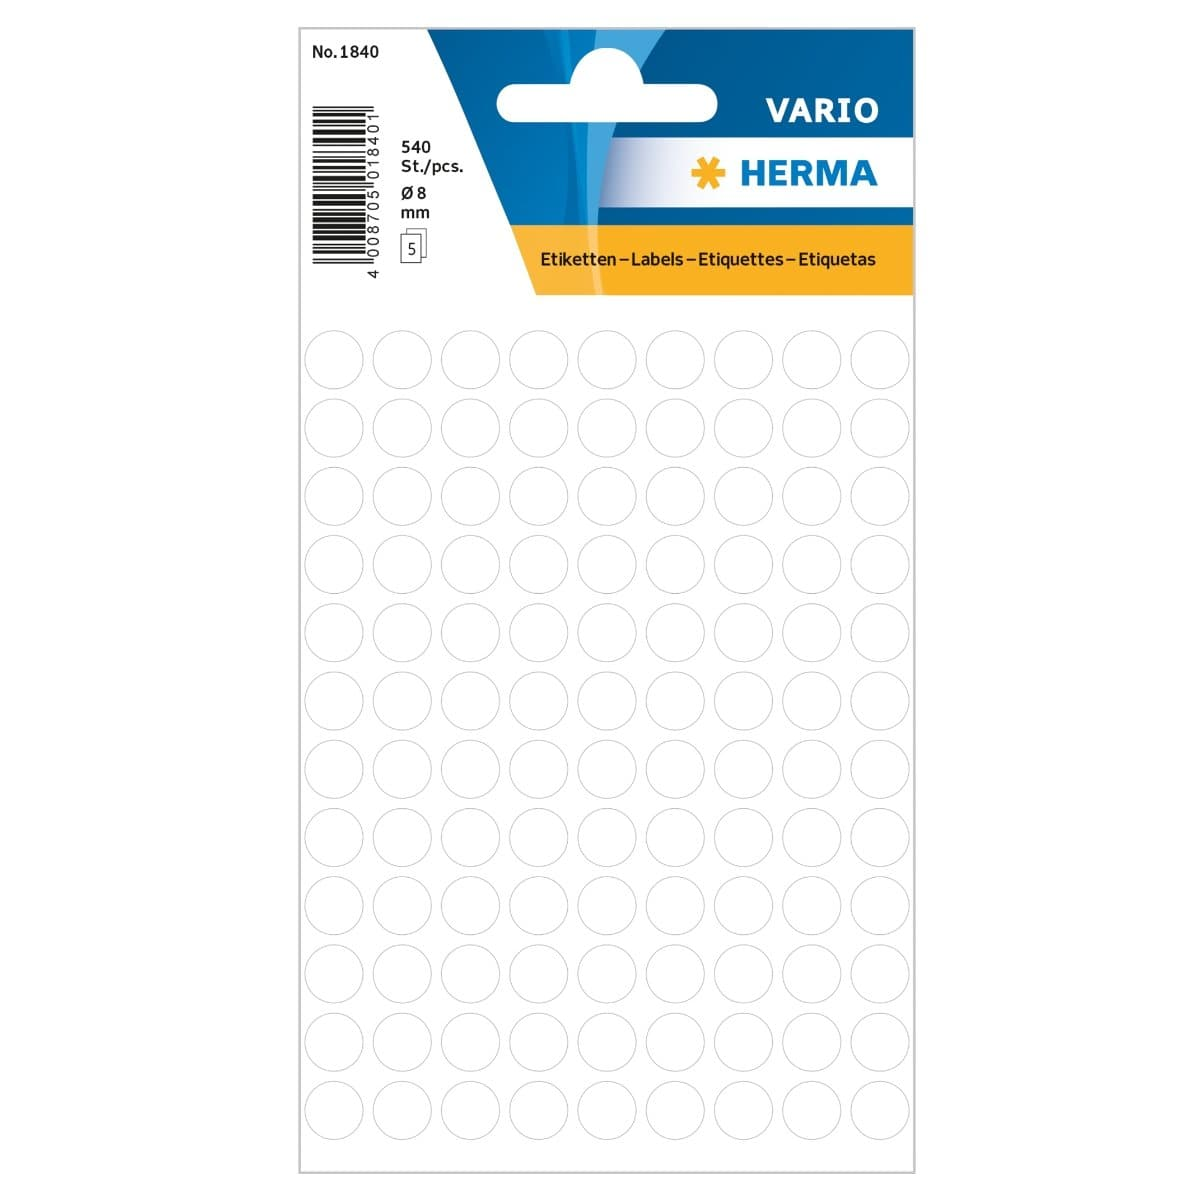 Herma Vario Sticker Color Dots, 8 mm, 540/pack, White